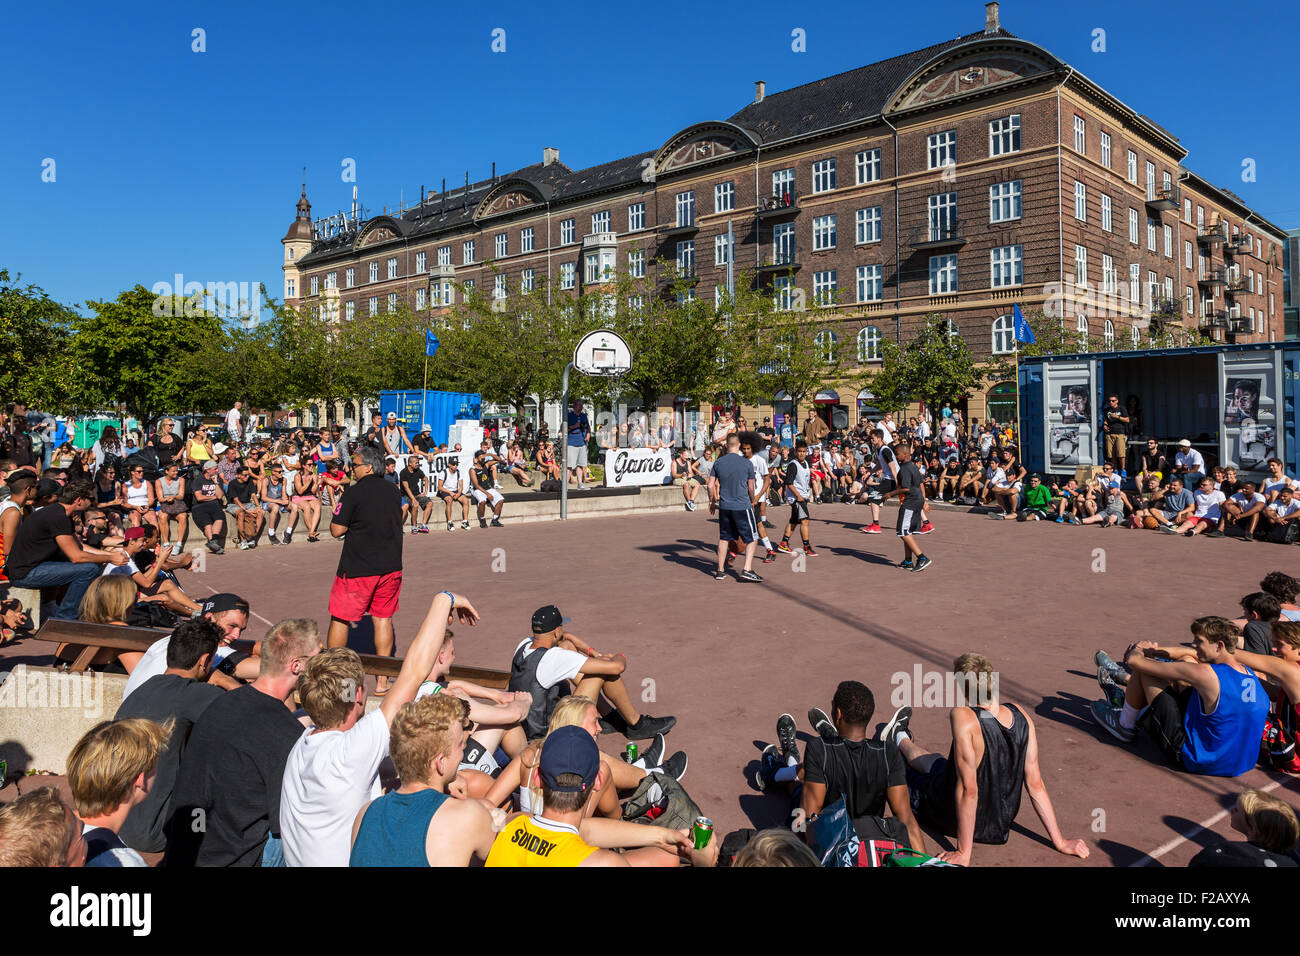 Street basketball, Islands Brygge Copenhagen, Denmark - Stock Image